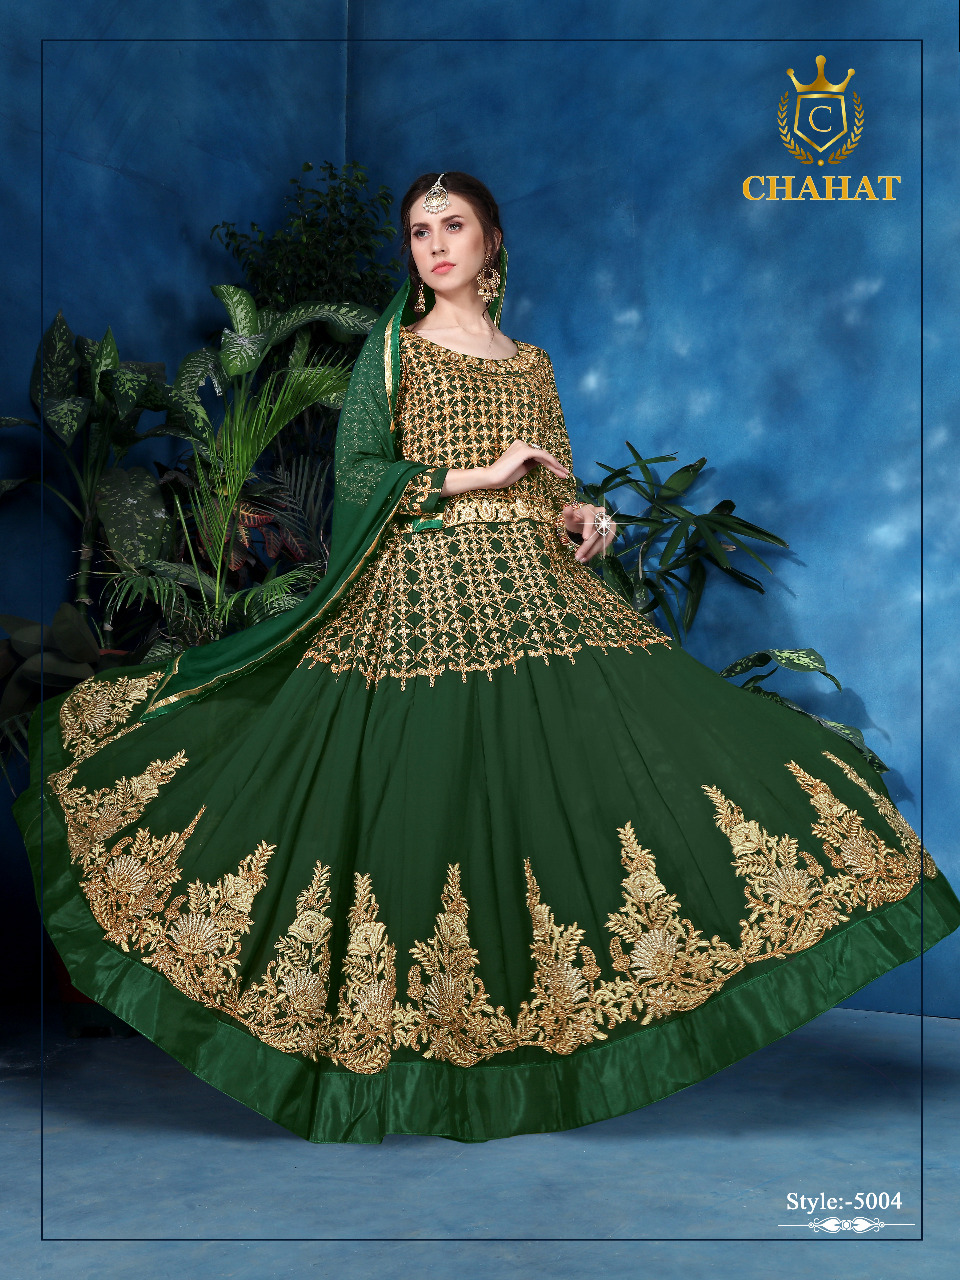 Chahat Fashion Bilal 5004